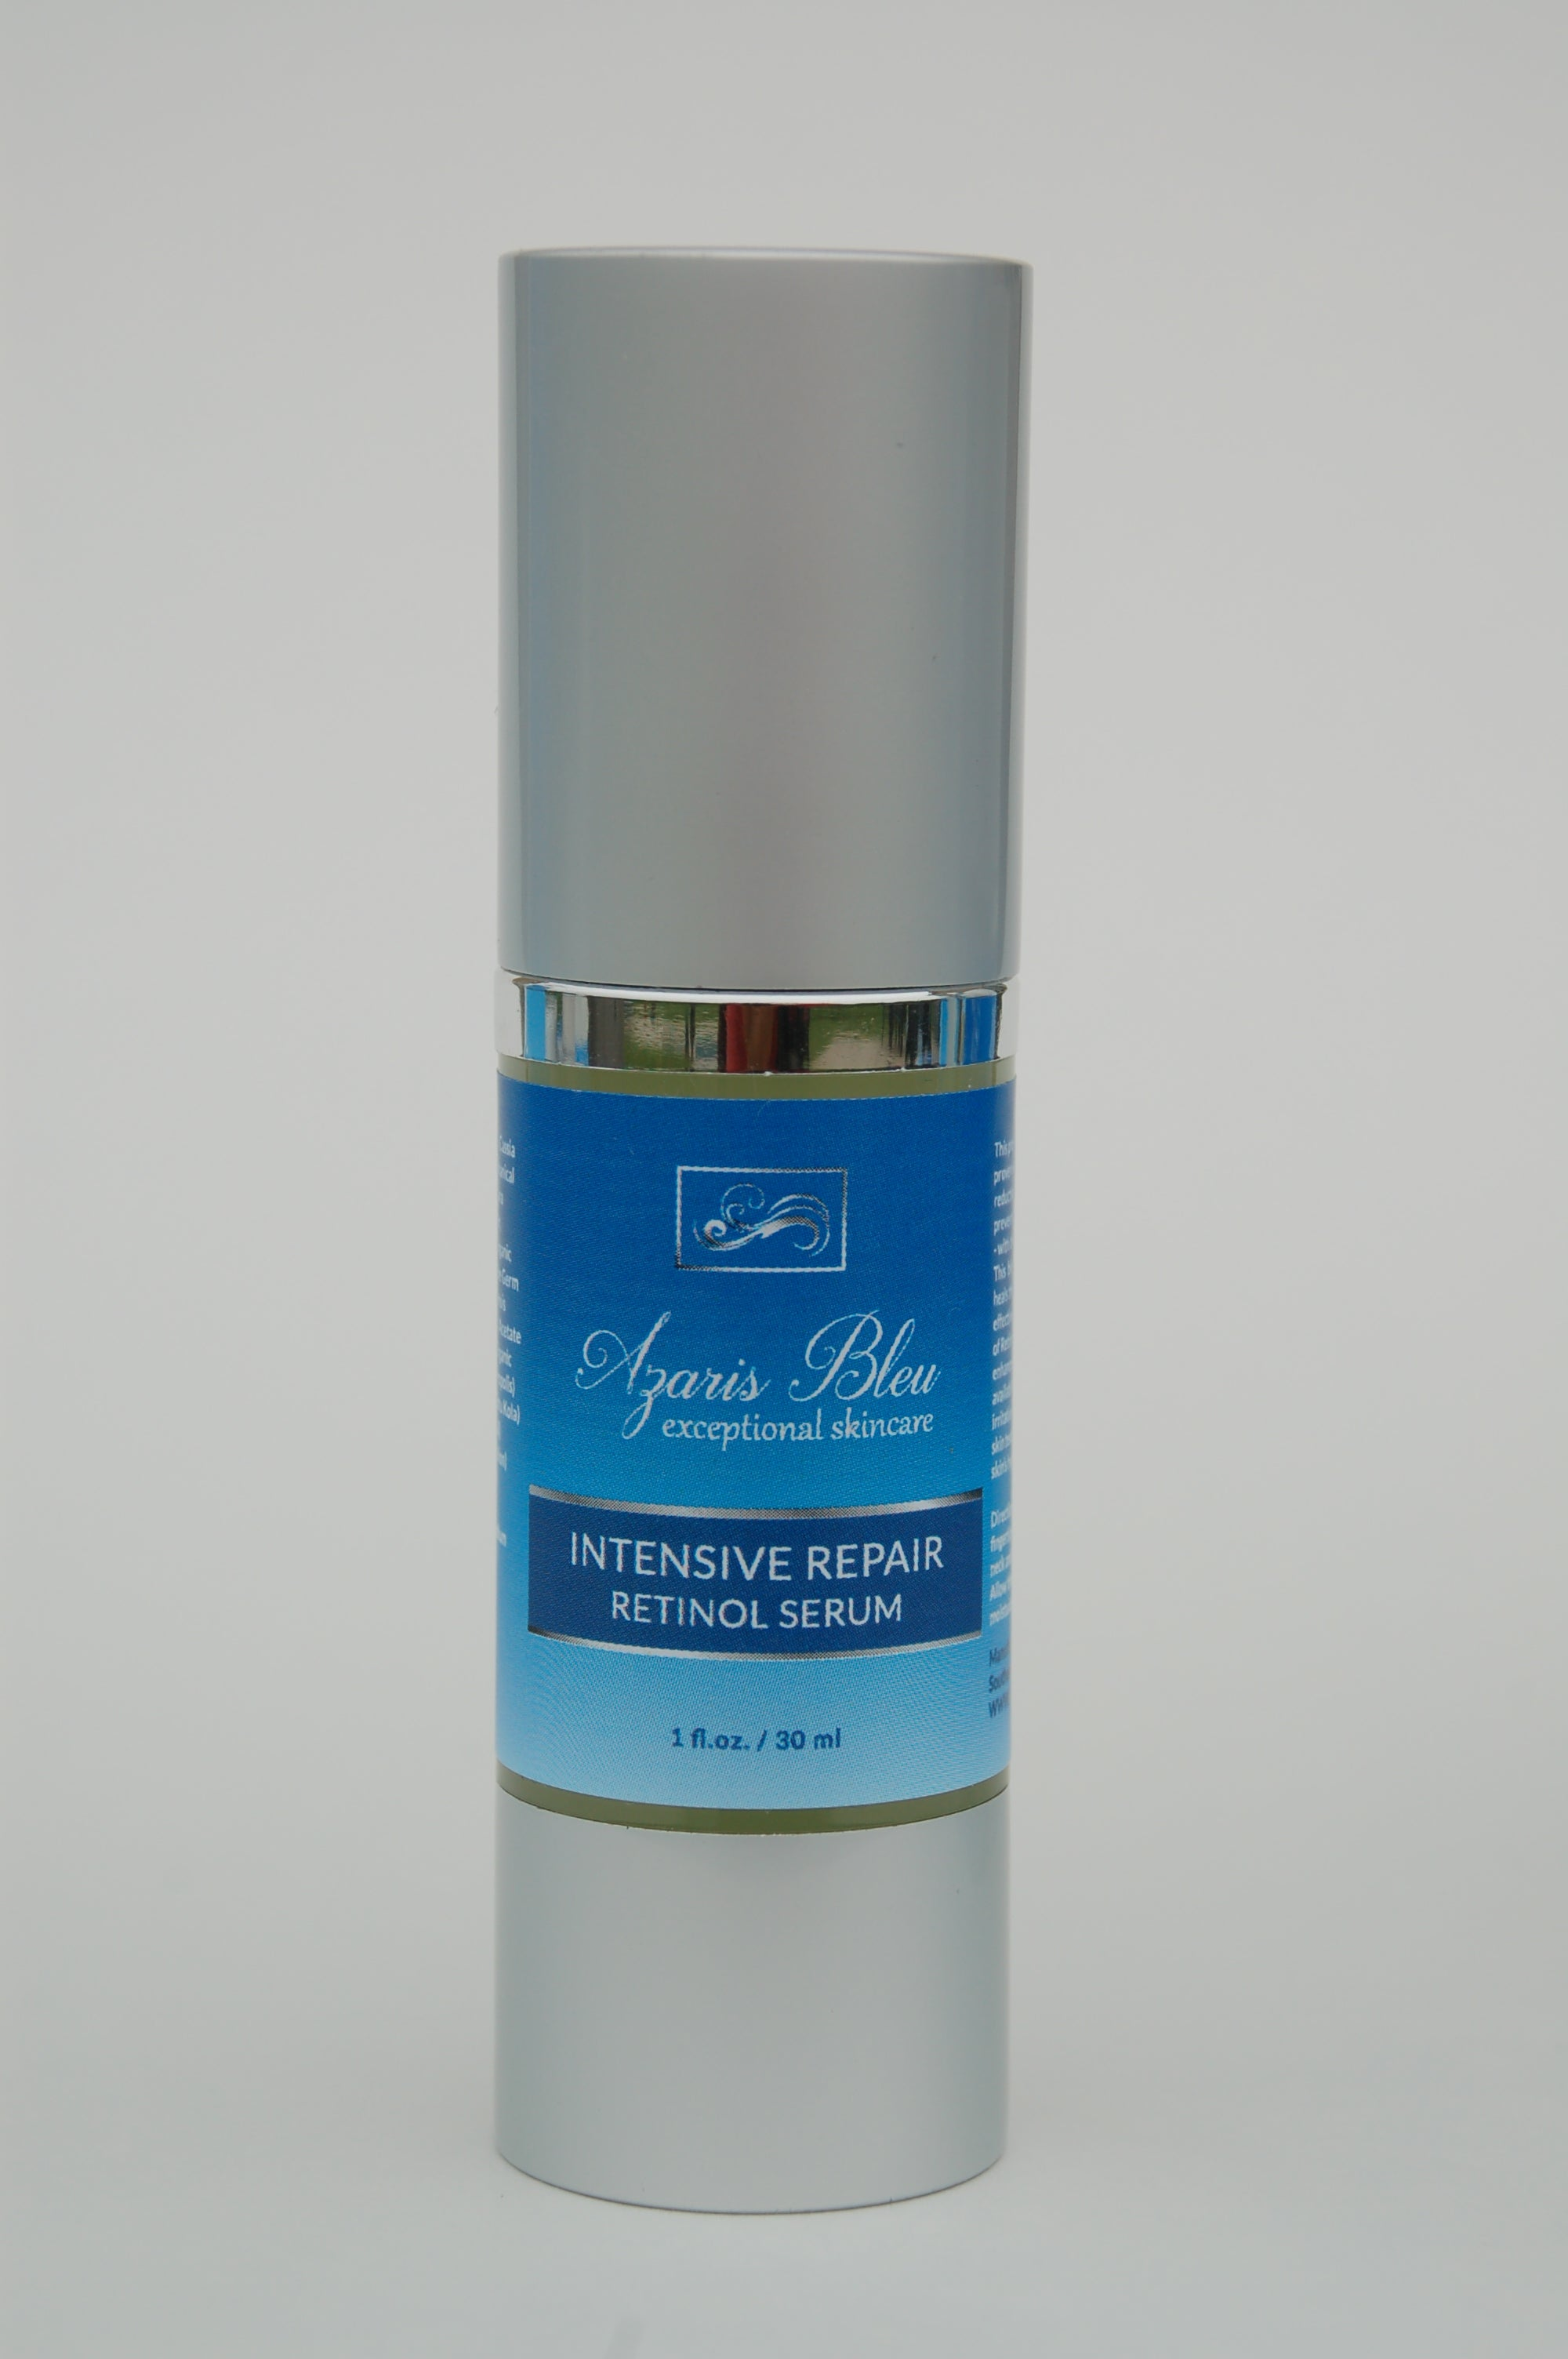 Intensive Repair Retinol Serum (1oz.)